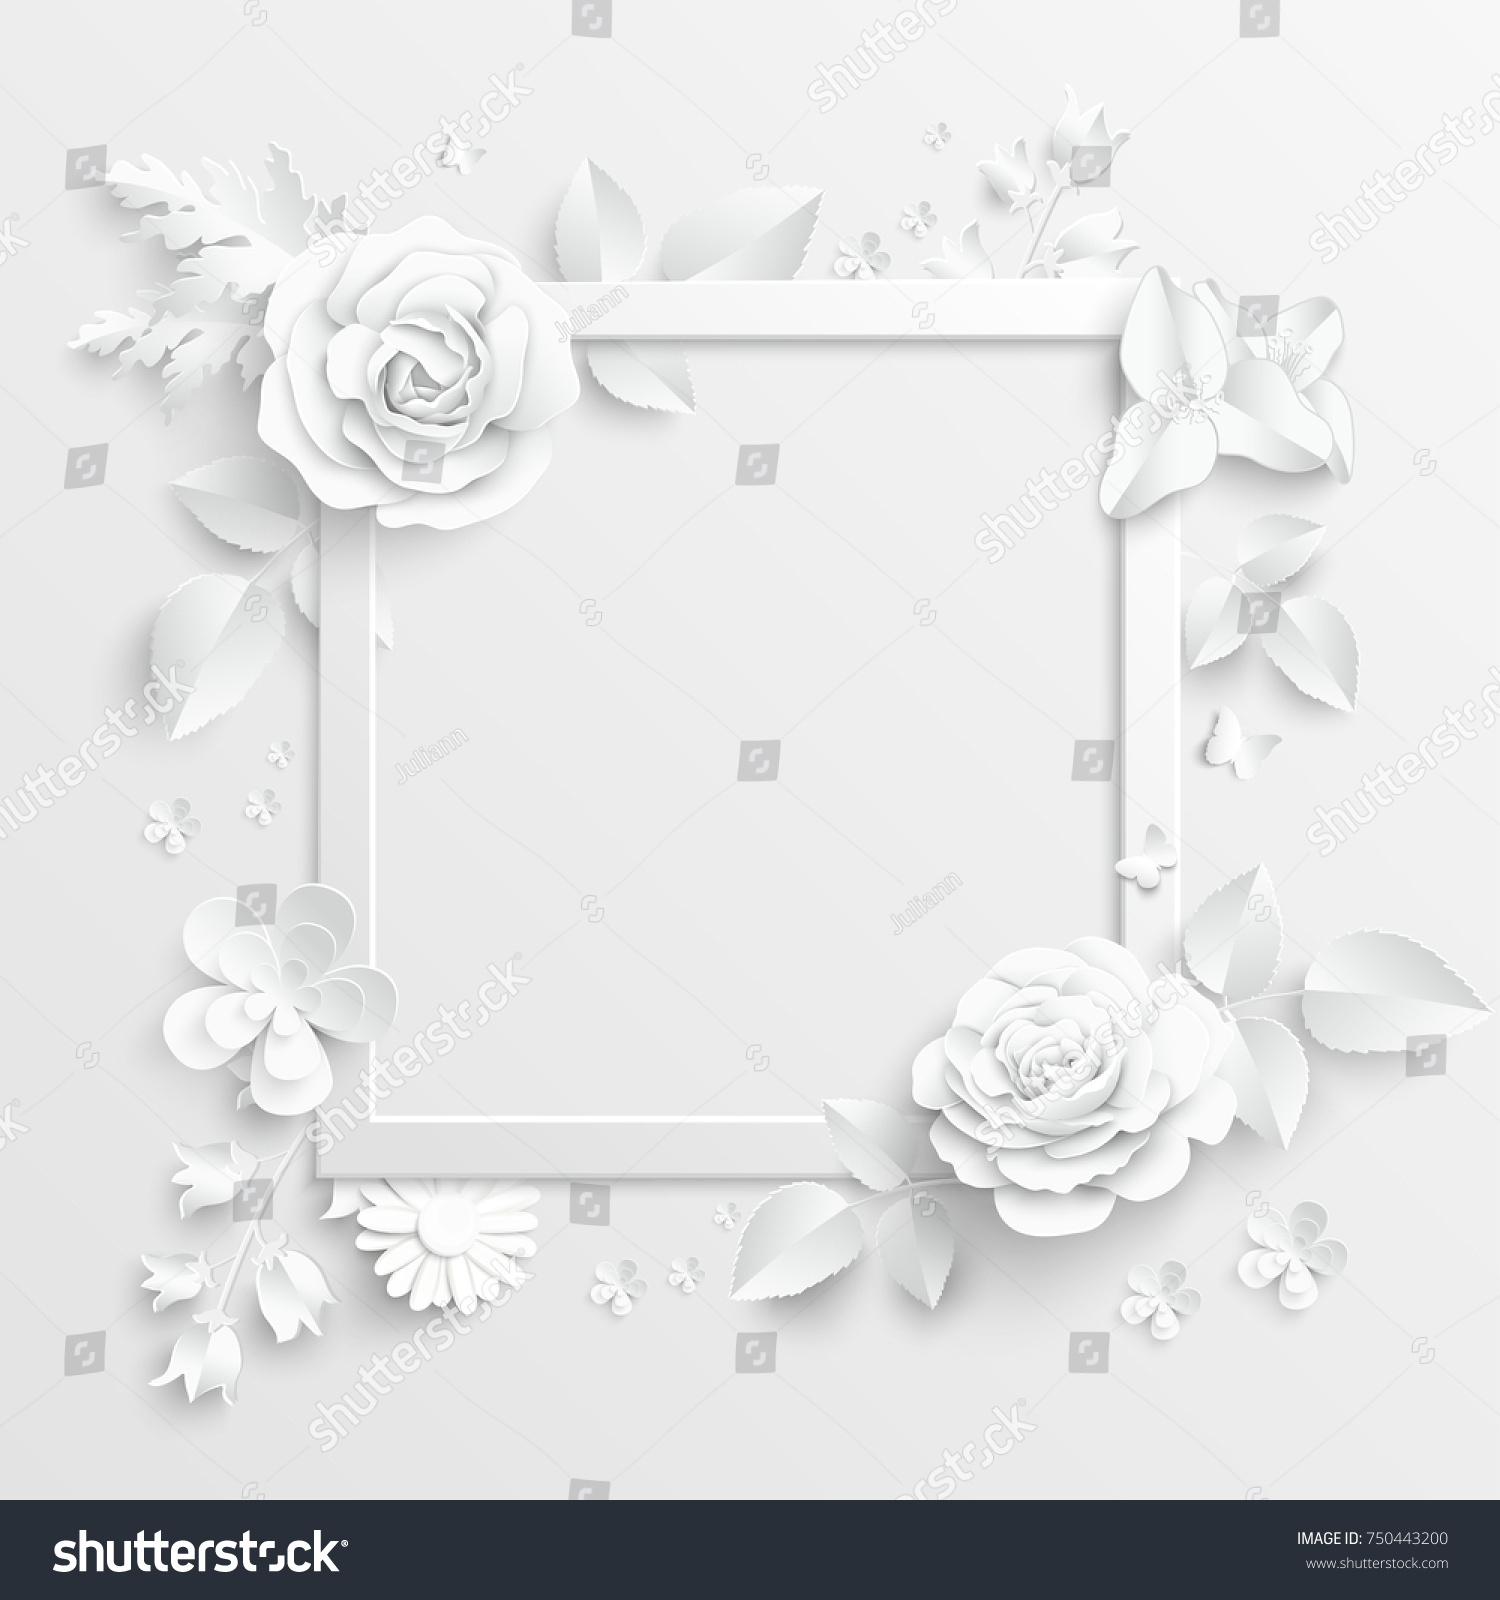 Paper Flower Frame White Rose White Stock Vector (Royalty Free ...